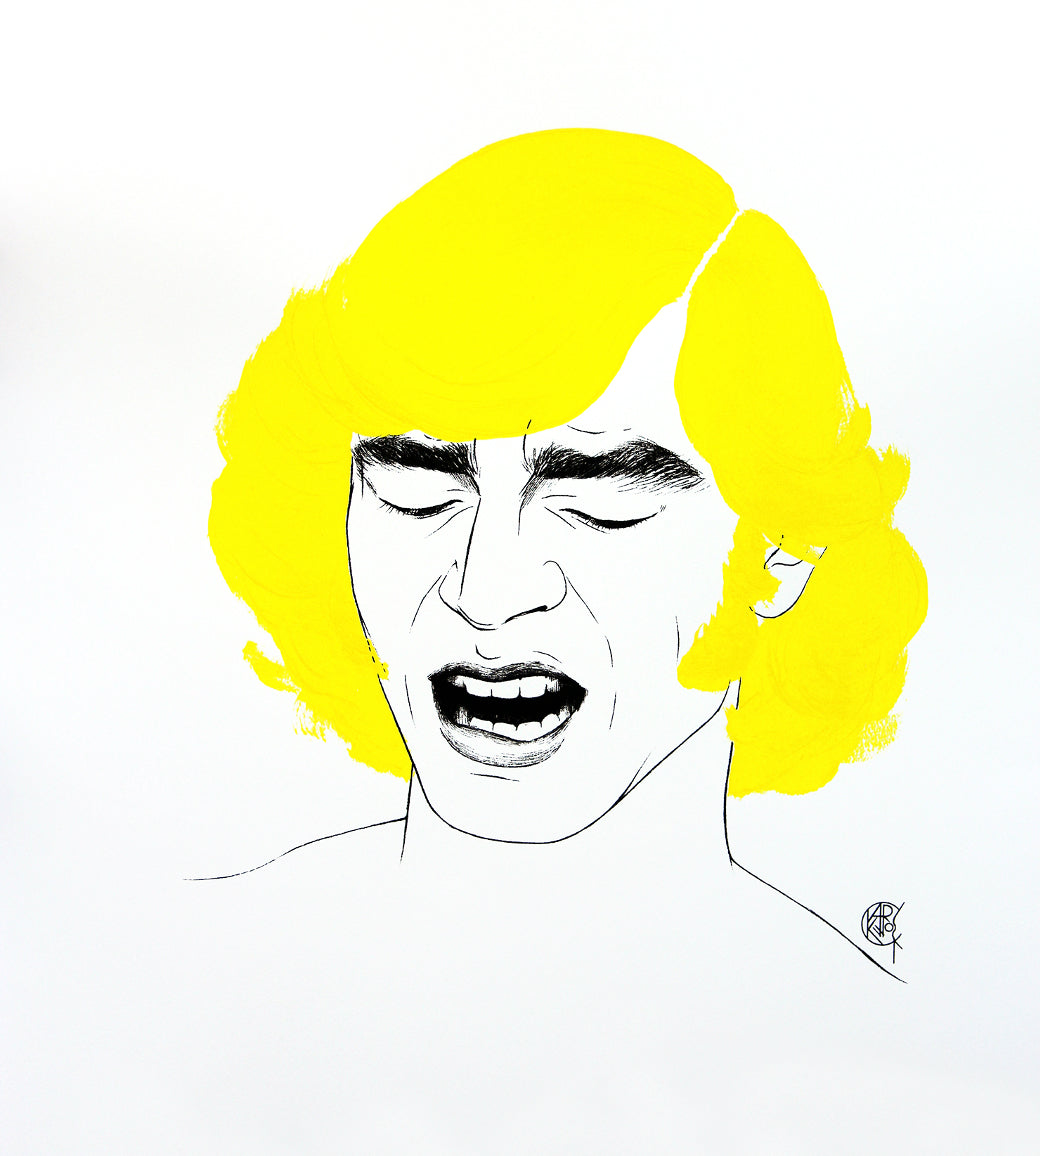 Cary Kwok, Cum To Barber (Orgasmic Yellow 1970s), 2016